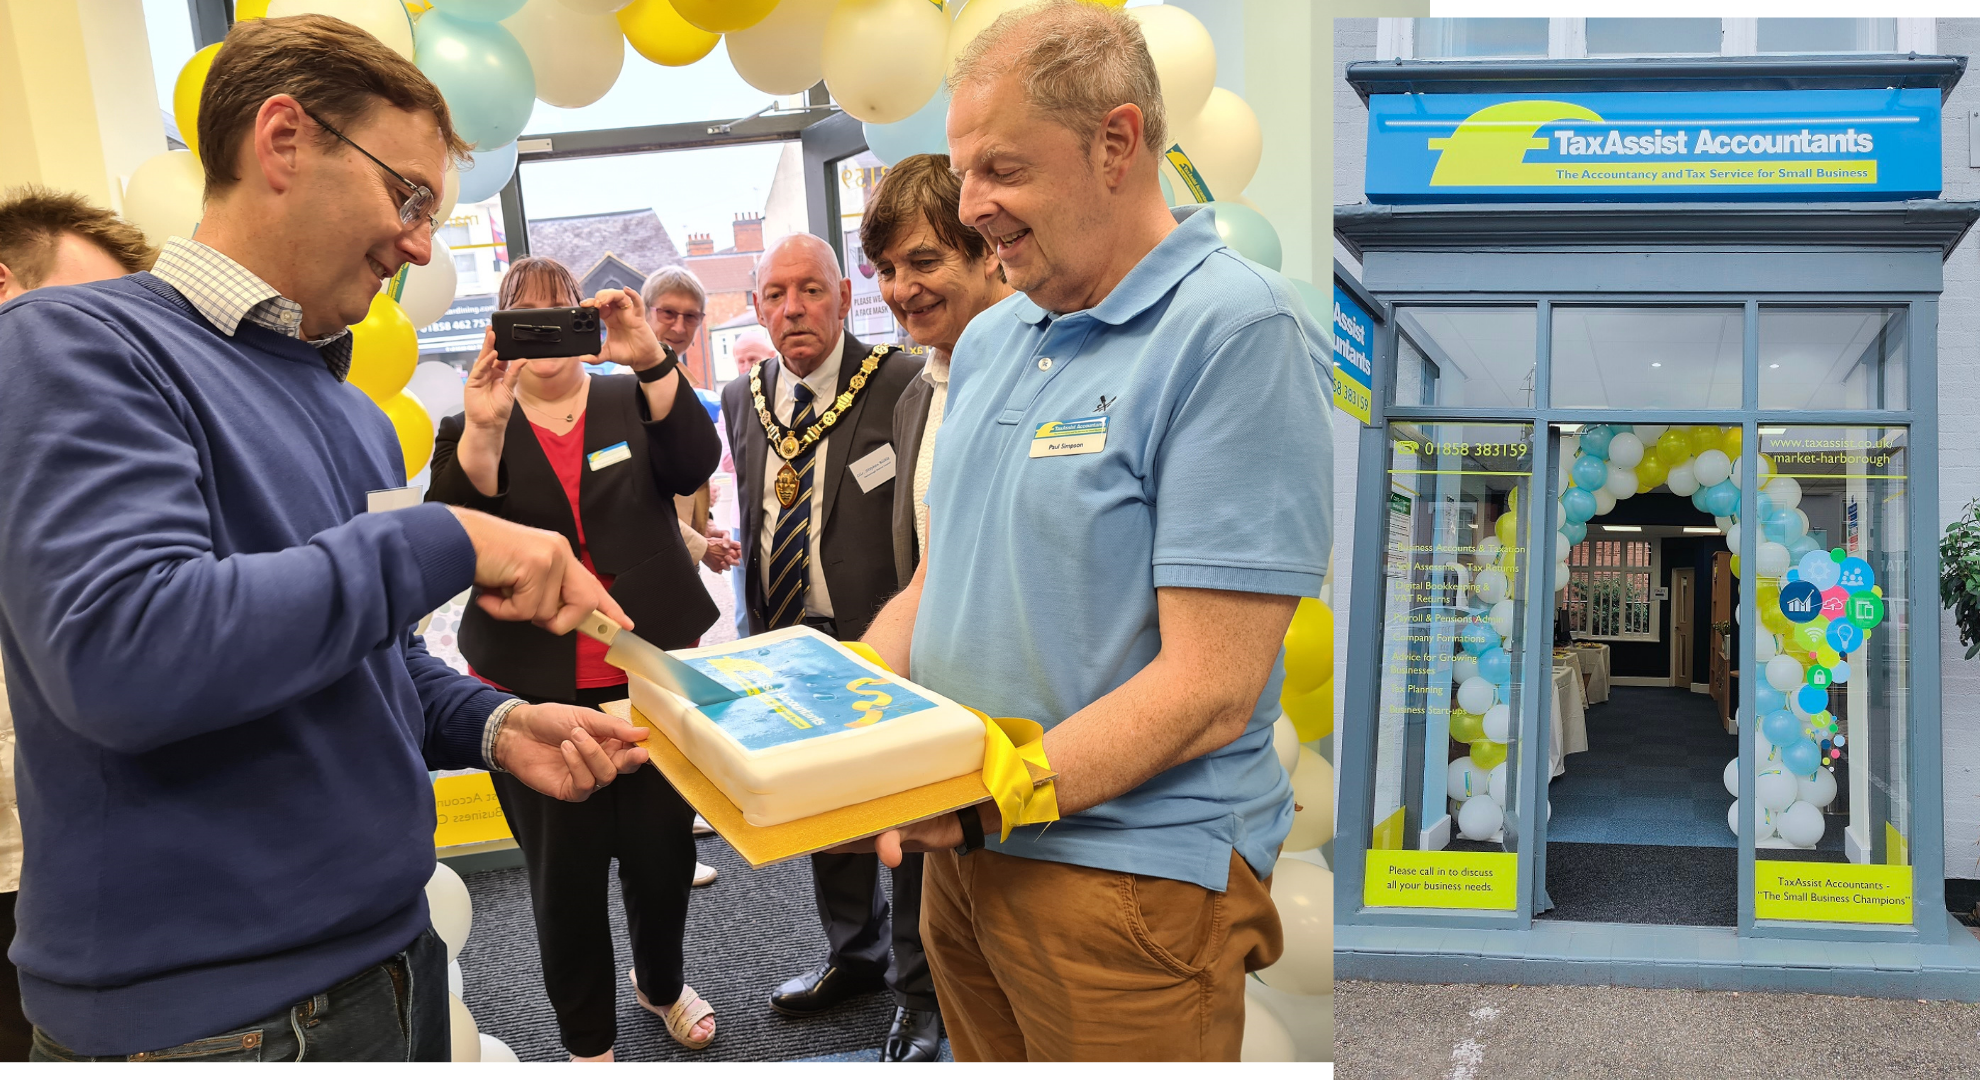 Council chairman officially launches TaxAssist in Market Harborough